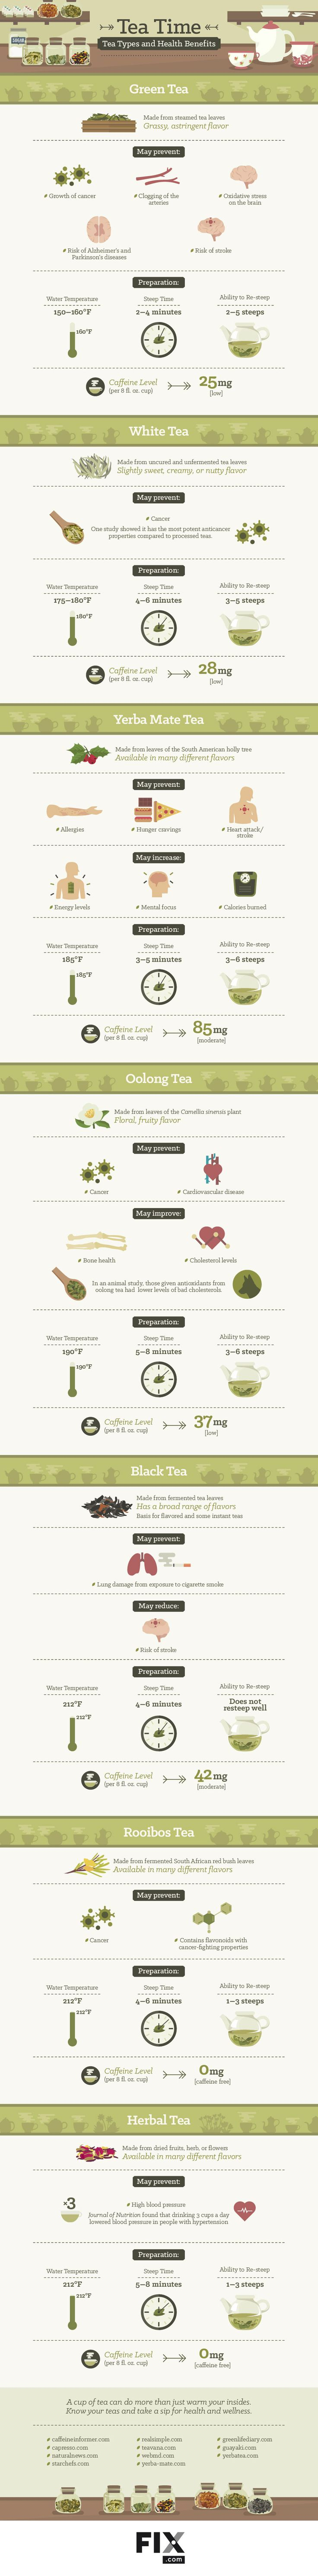 Tea Time: Types of Tea and Their Health Benefits #infographic #Health #Tea #GreenTea